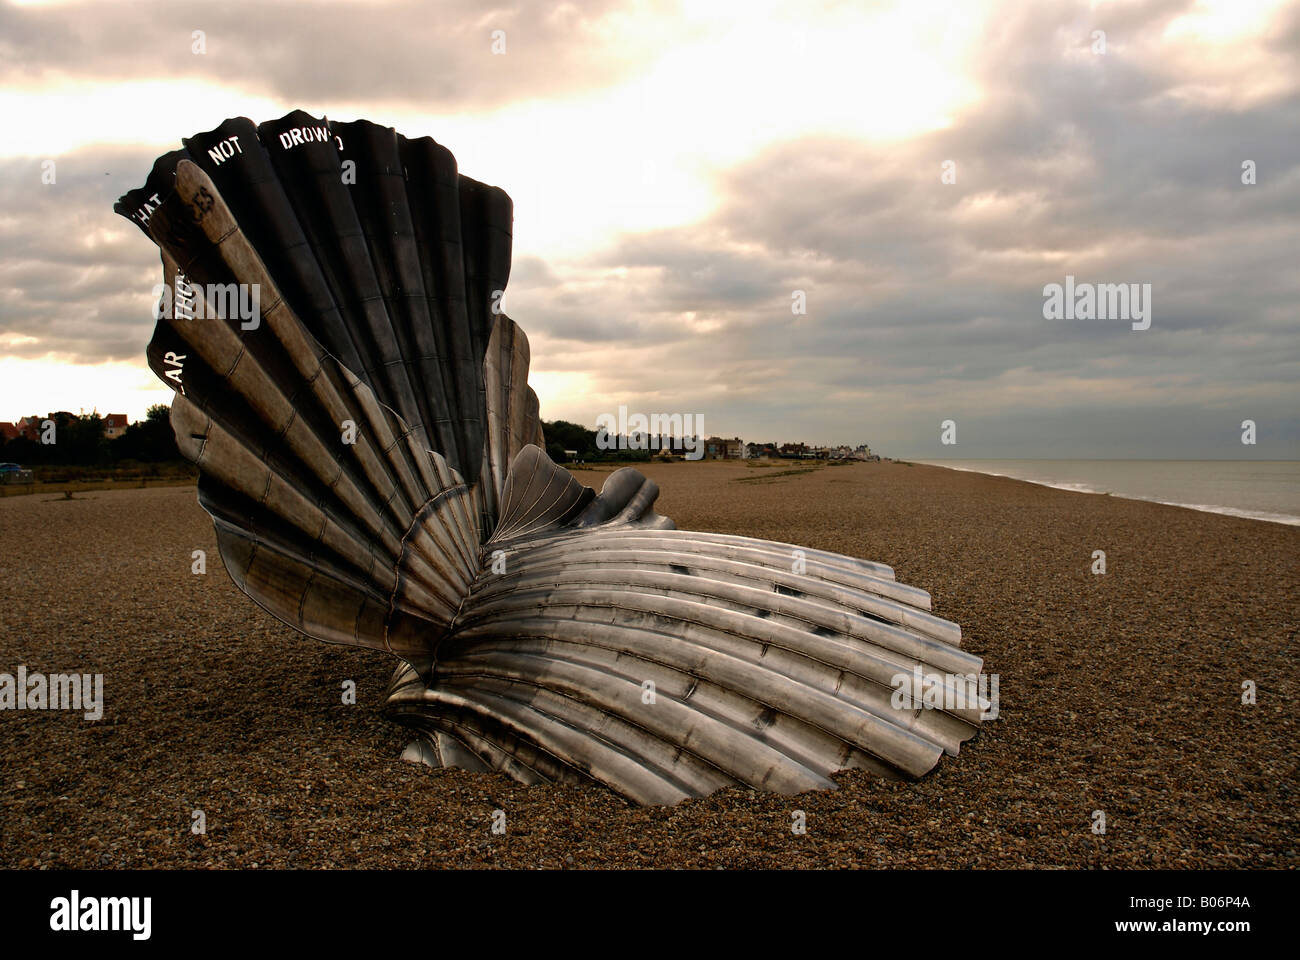 Scallop Sculpture. - Stock Image